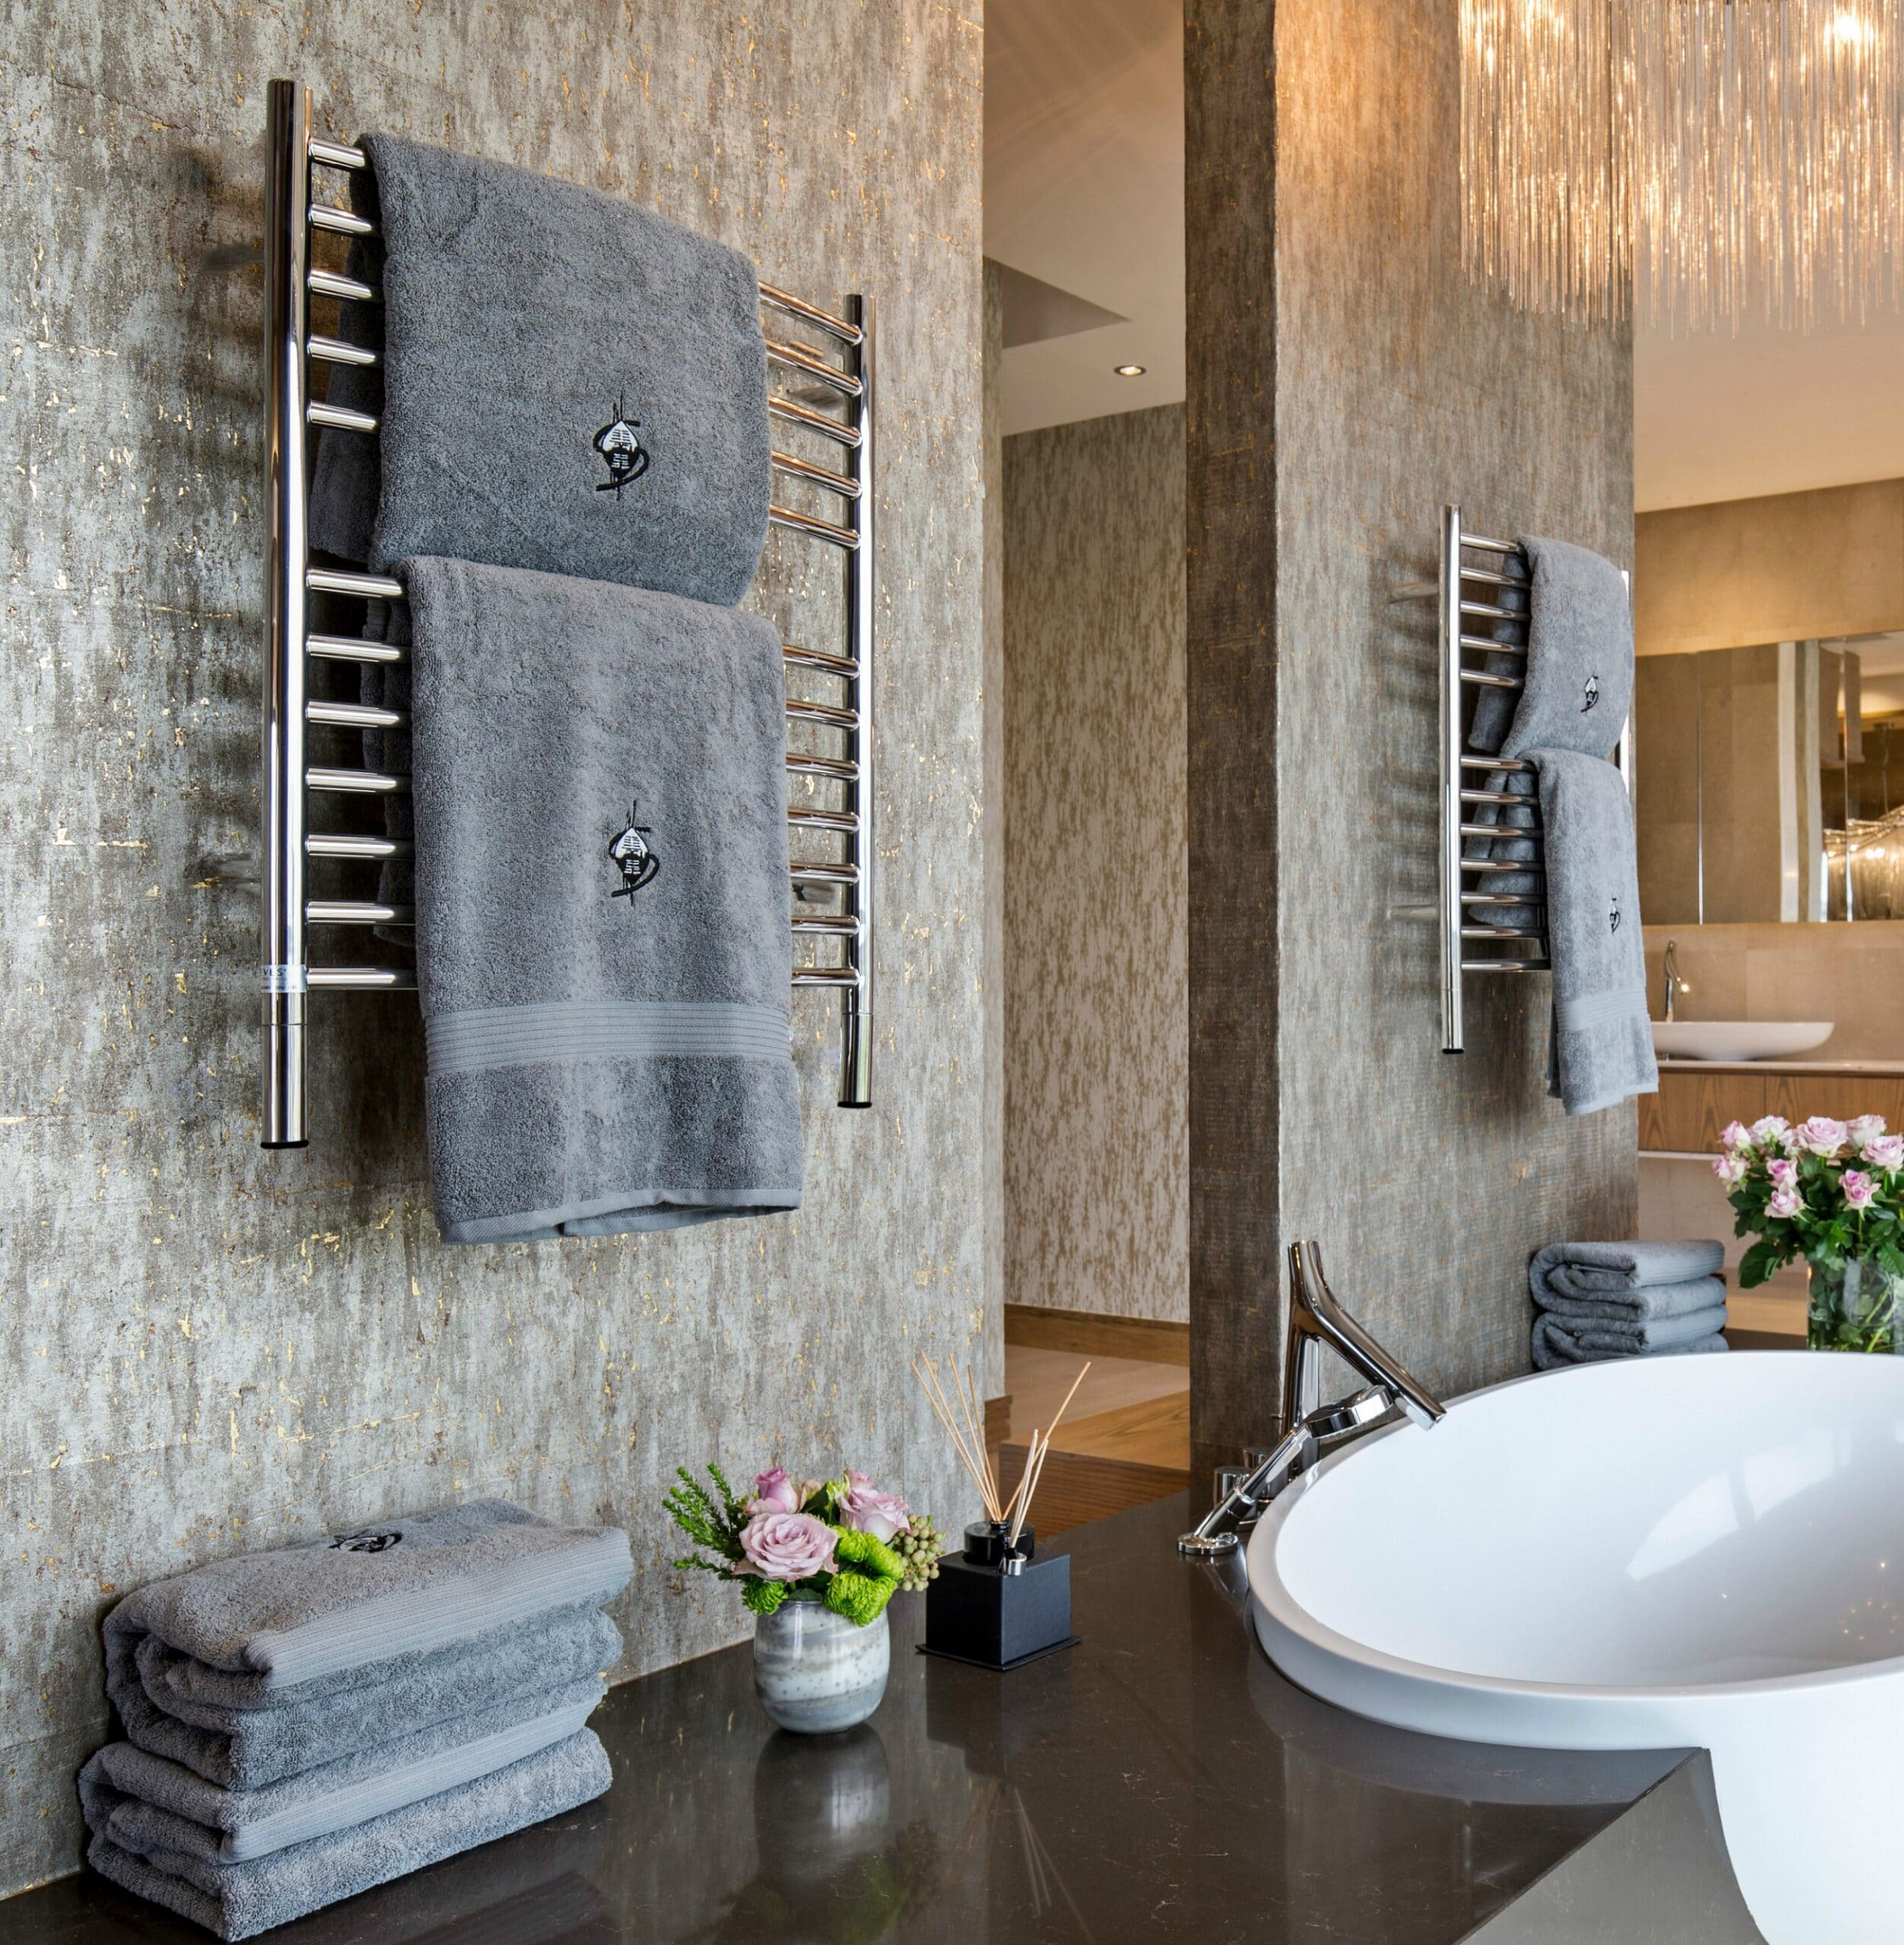 Amba Jeeves Classic E Curved Polished. Have ever thought about purchasing a Heated Towel Rack for your home? Freestanding heated towel racks units only need to be plugged in, come in a variety of space-saving models, and are very affordable. Adding a heated towel rack can save from having to launder towels as often and the racks can also be used to dry clothing.